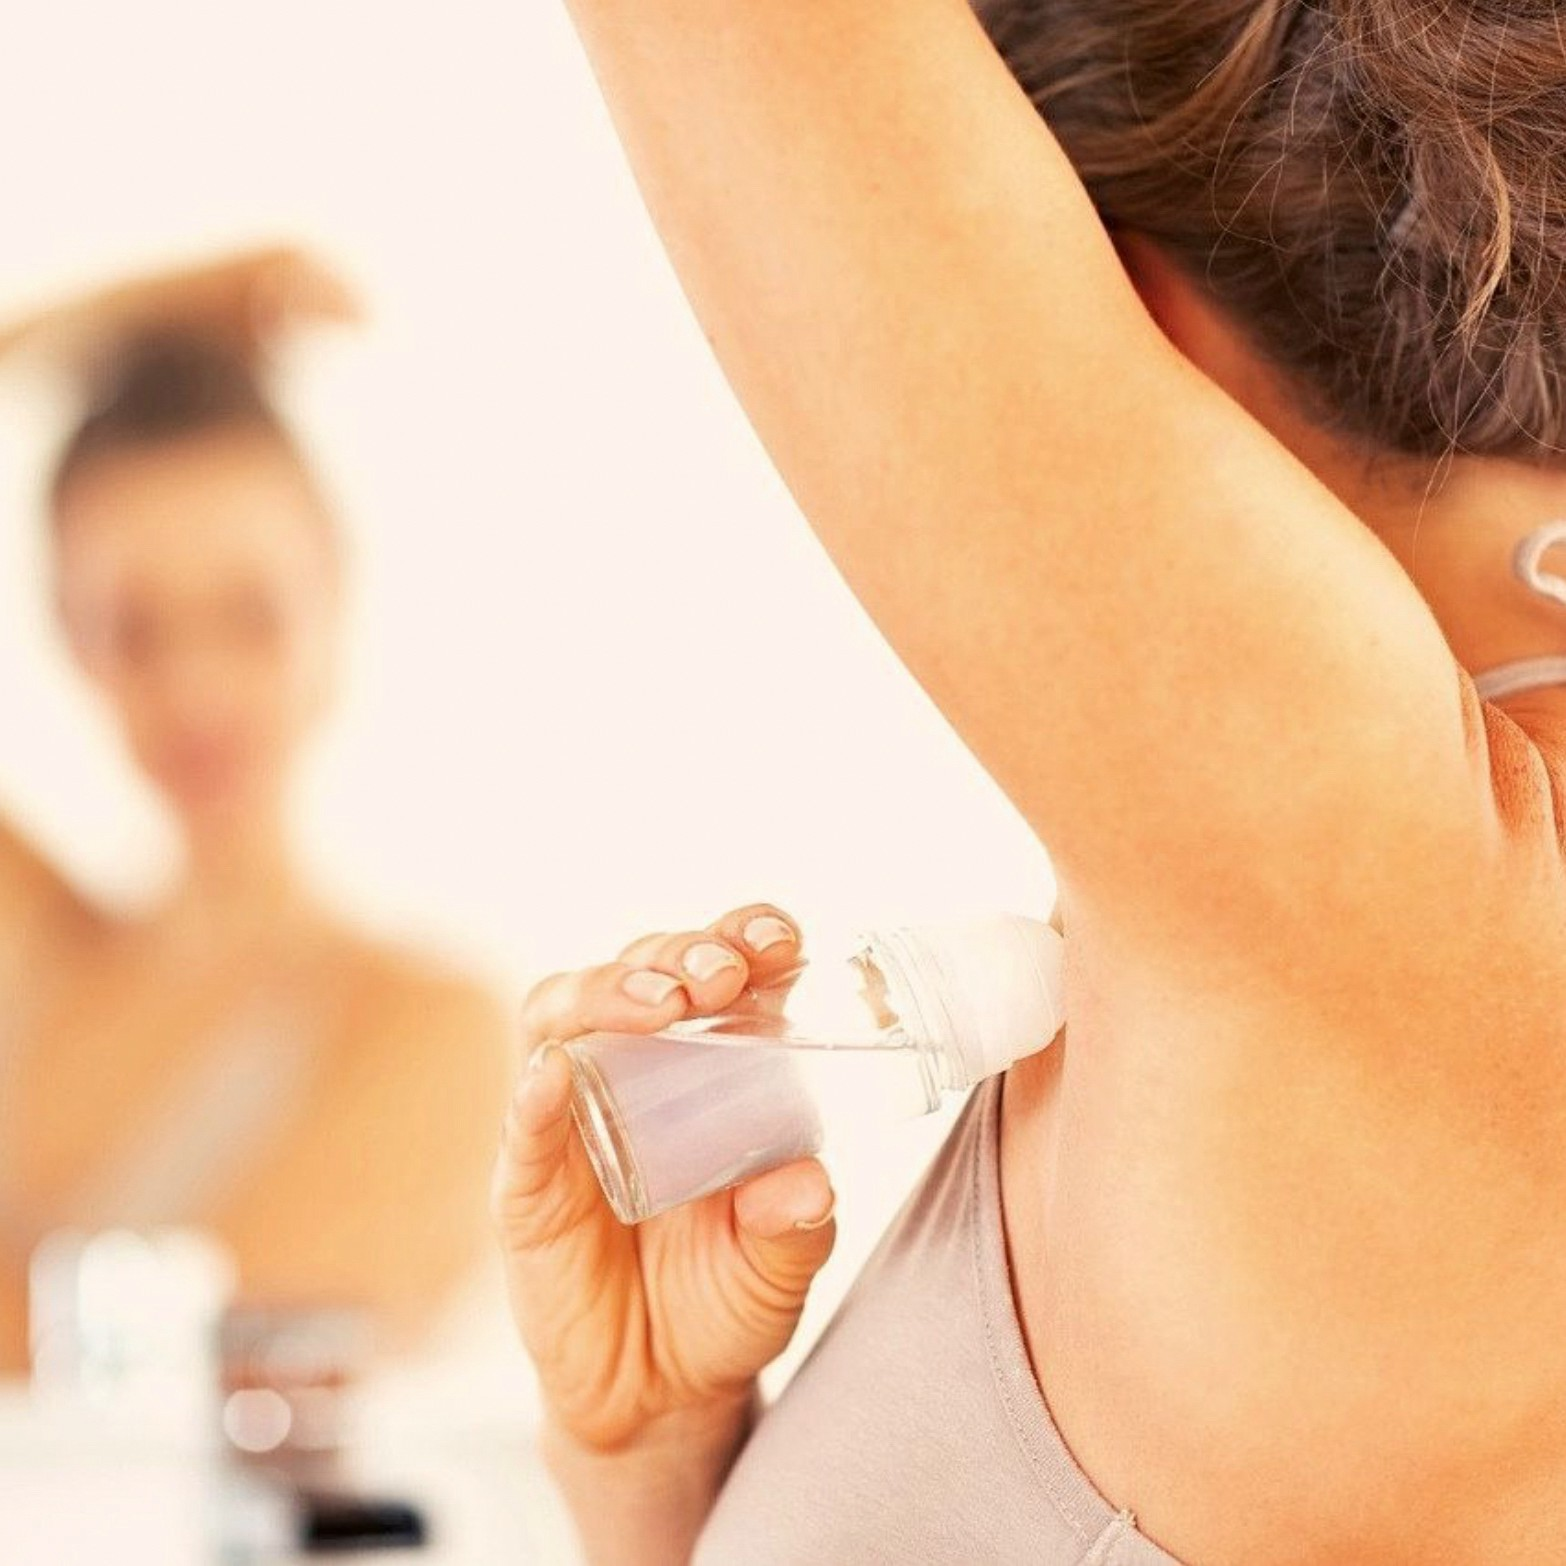 An image of a woman putting on deodorant